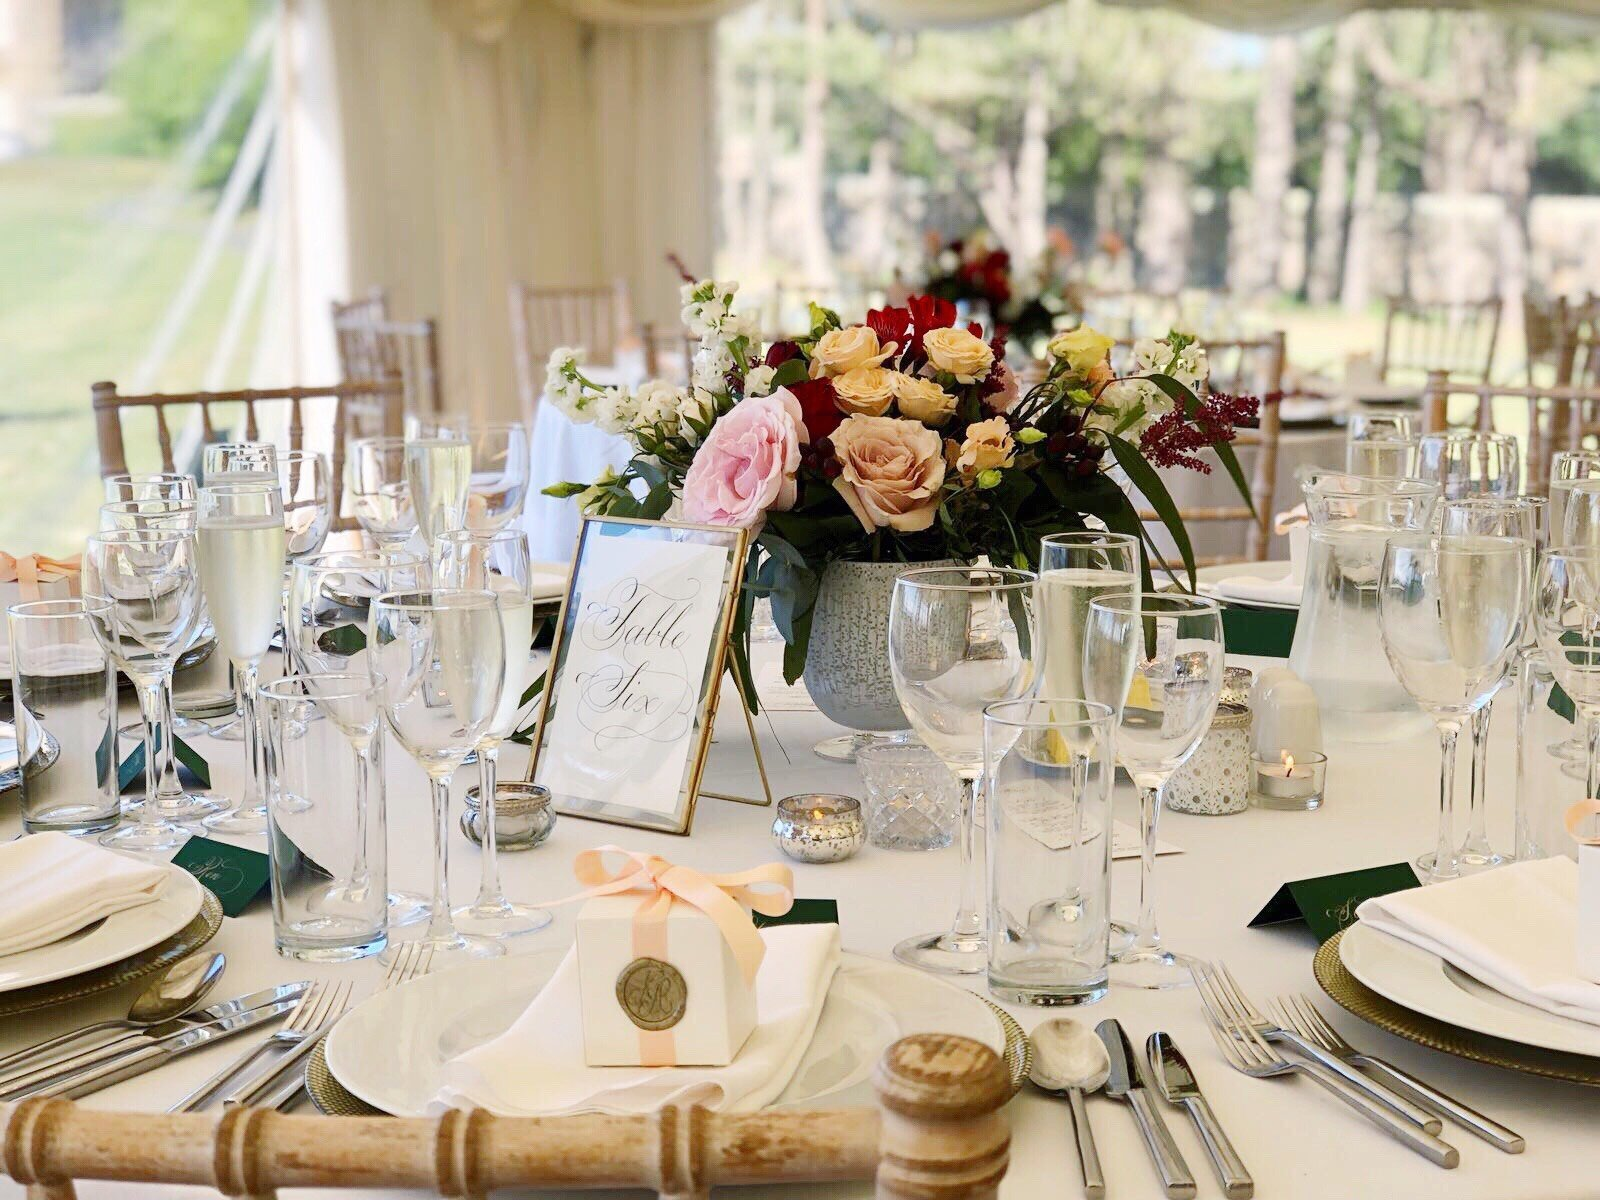 Scottish wedding table settings with calligraphy table number signs